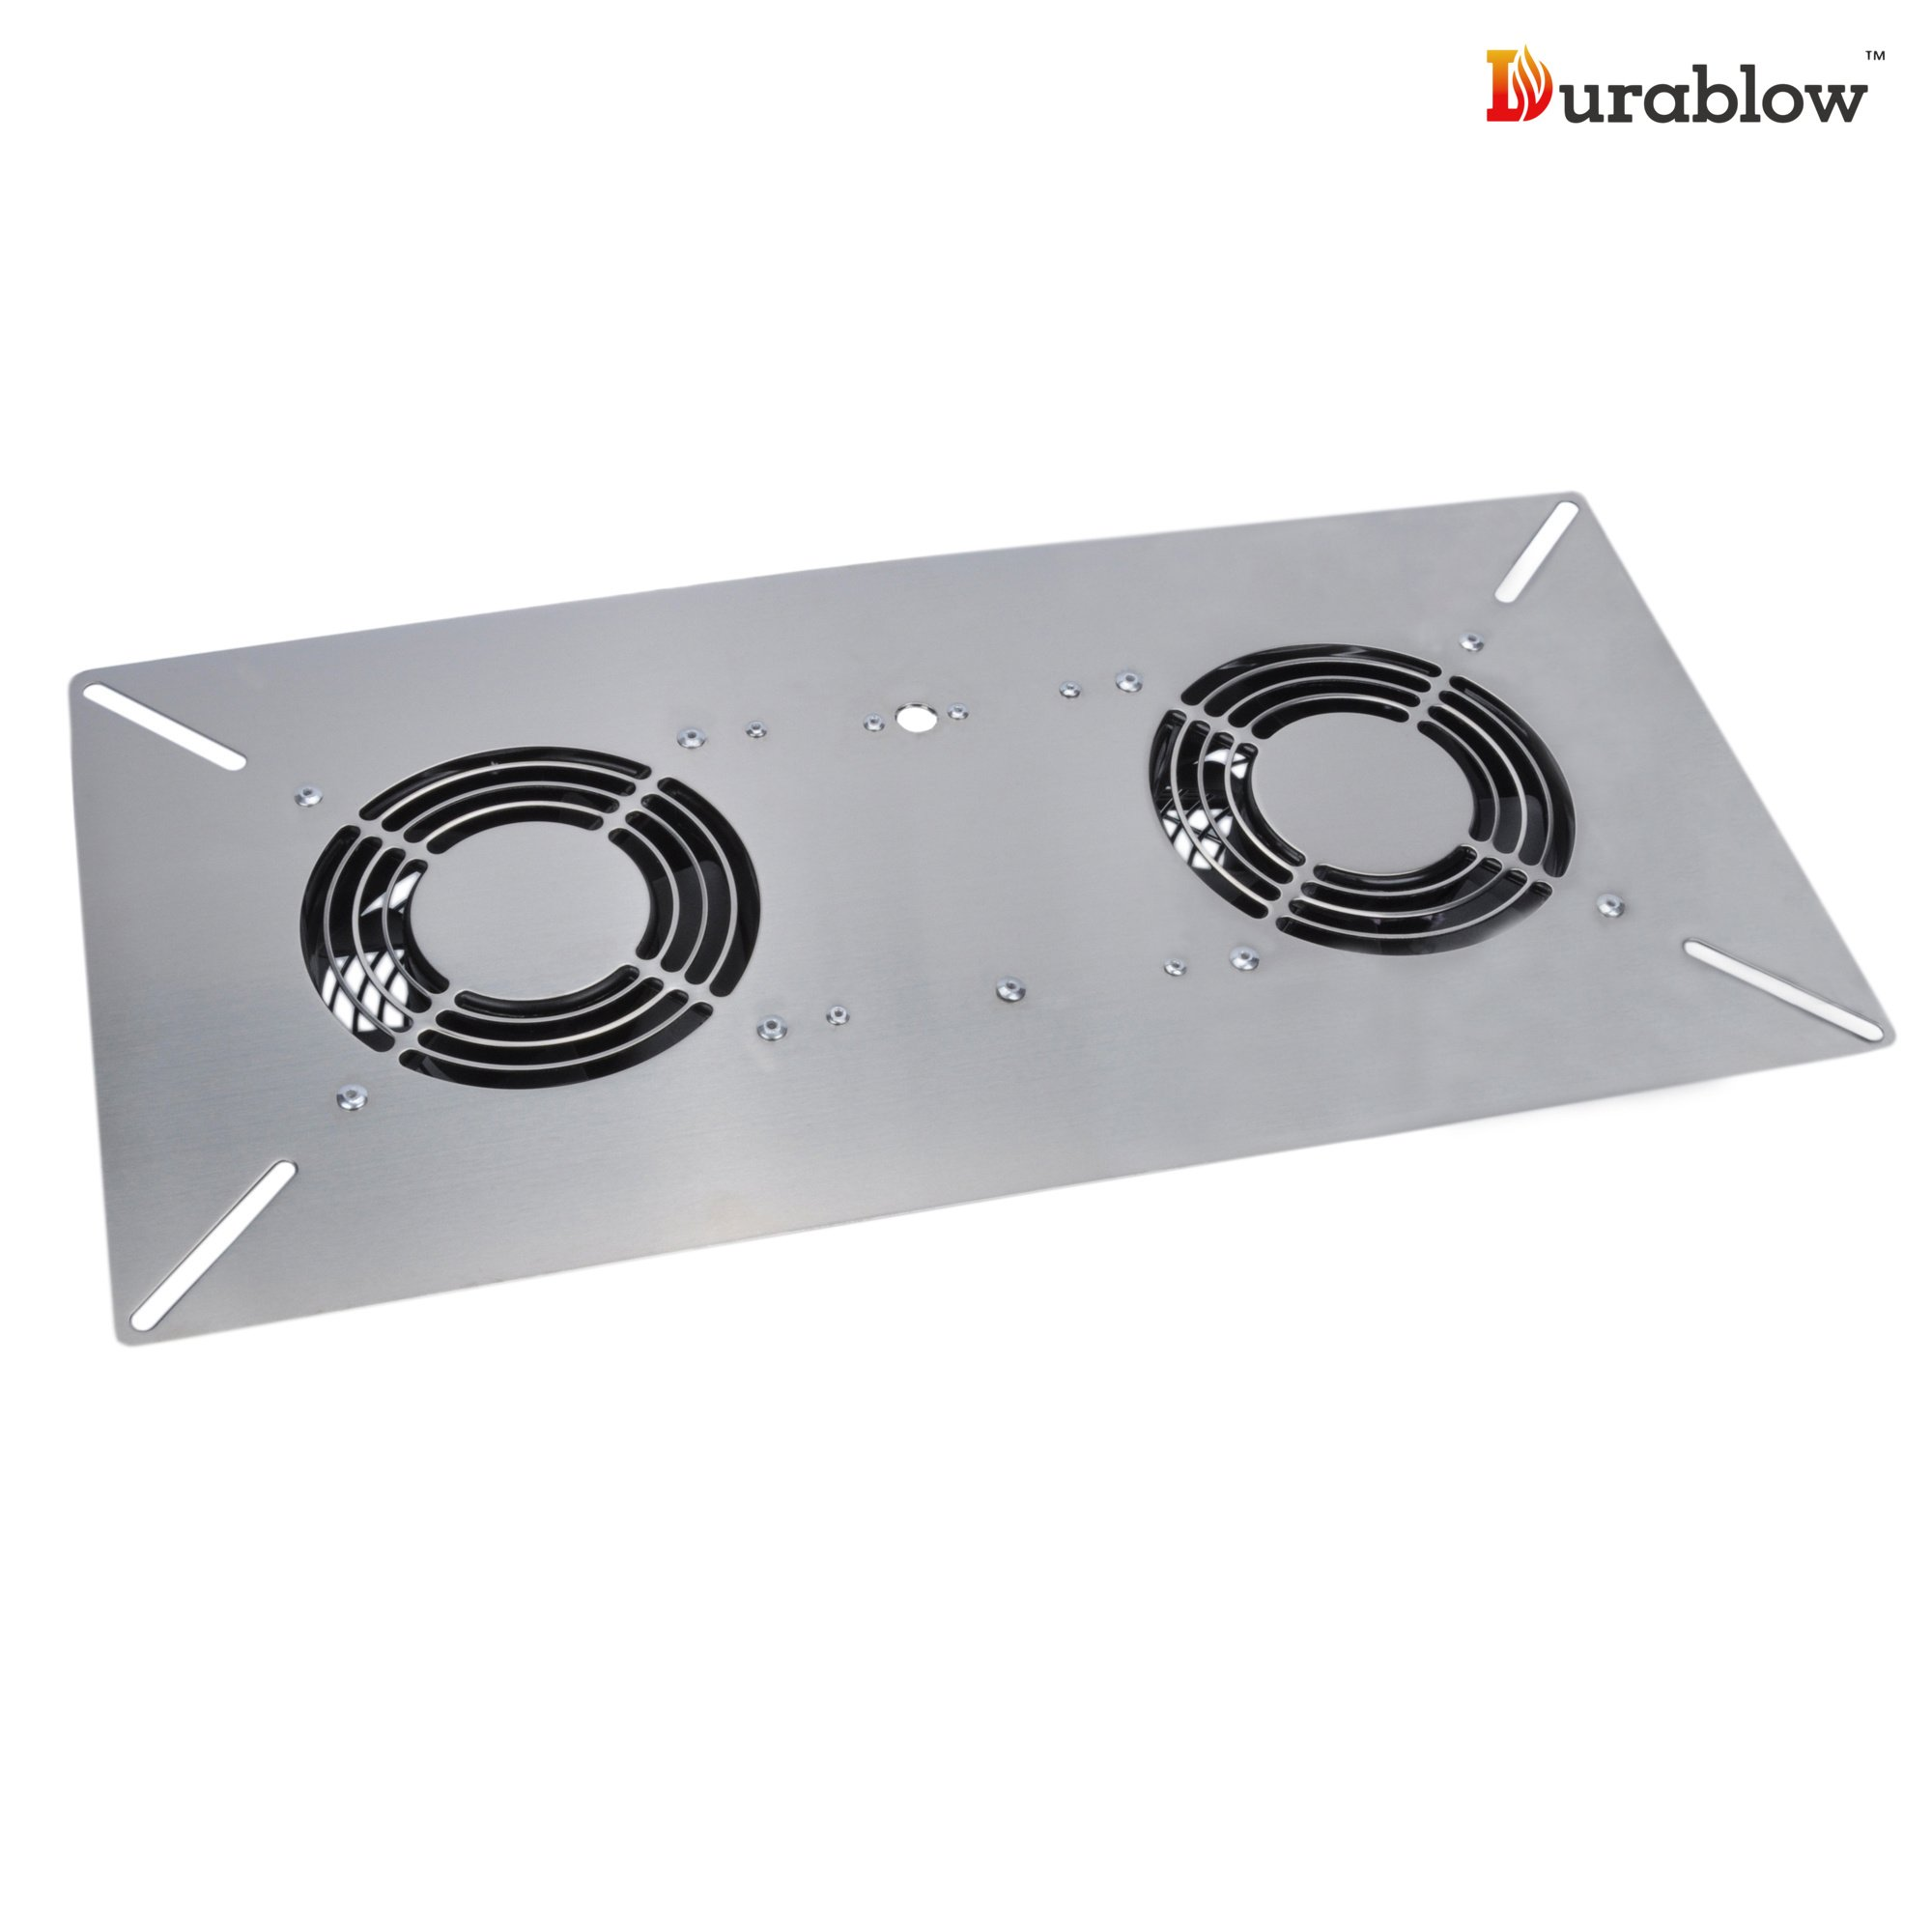 Durablow Stainless Steel Crawl Space Foundation Dual Fans Ventilator + Built-in Dehumidistat (Stainless Steel 304, M2D) by Durablow (Image #7)